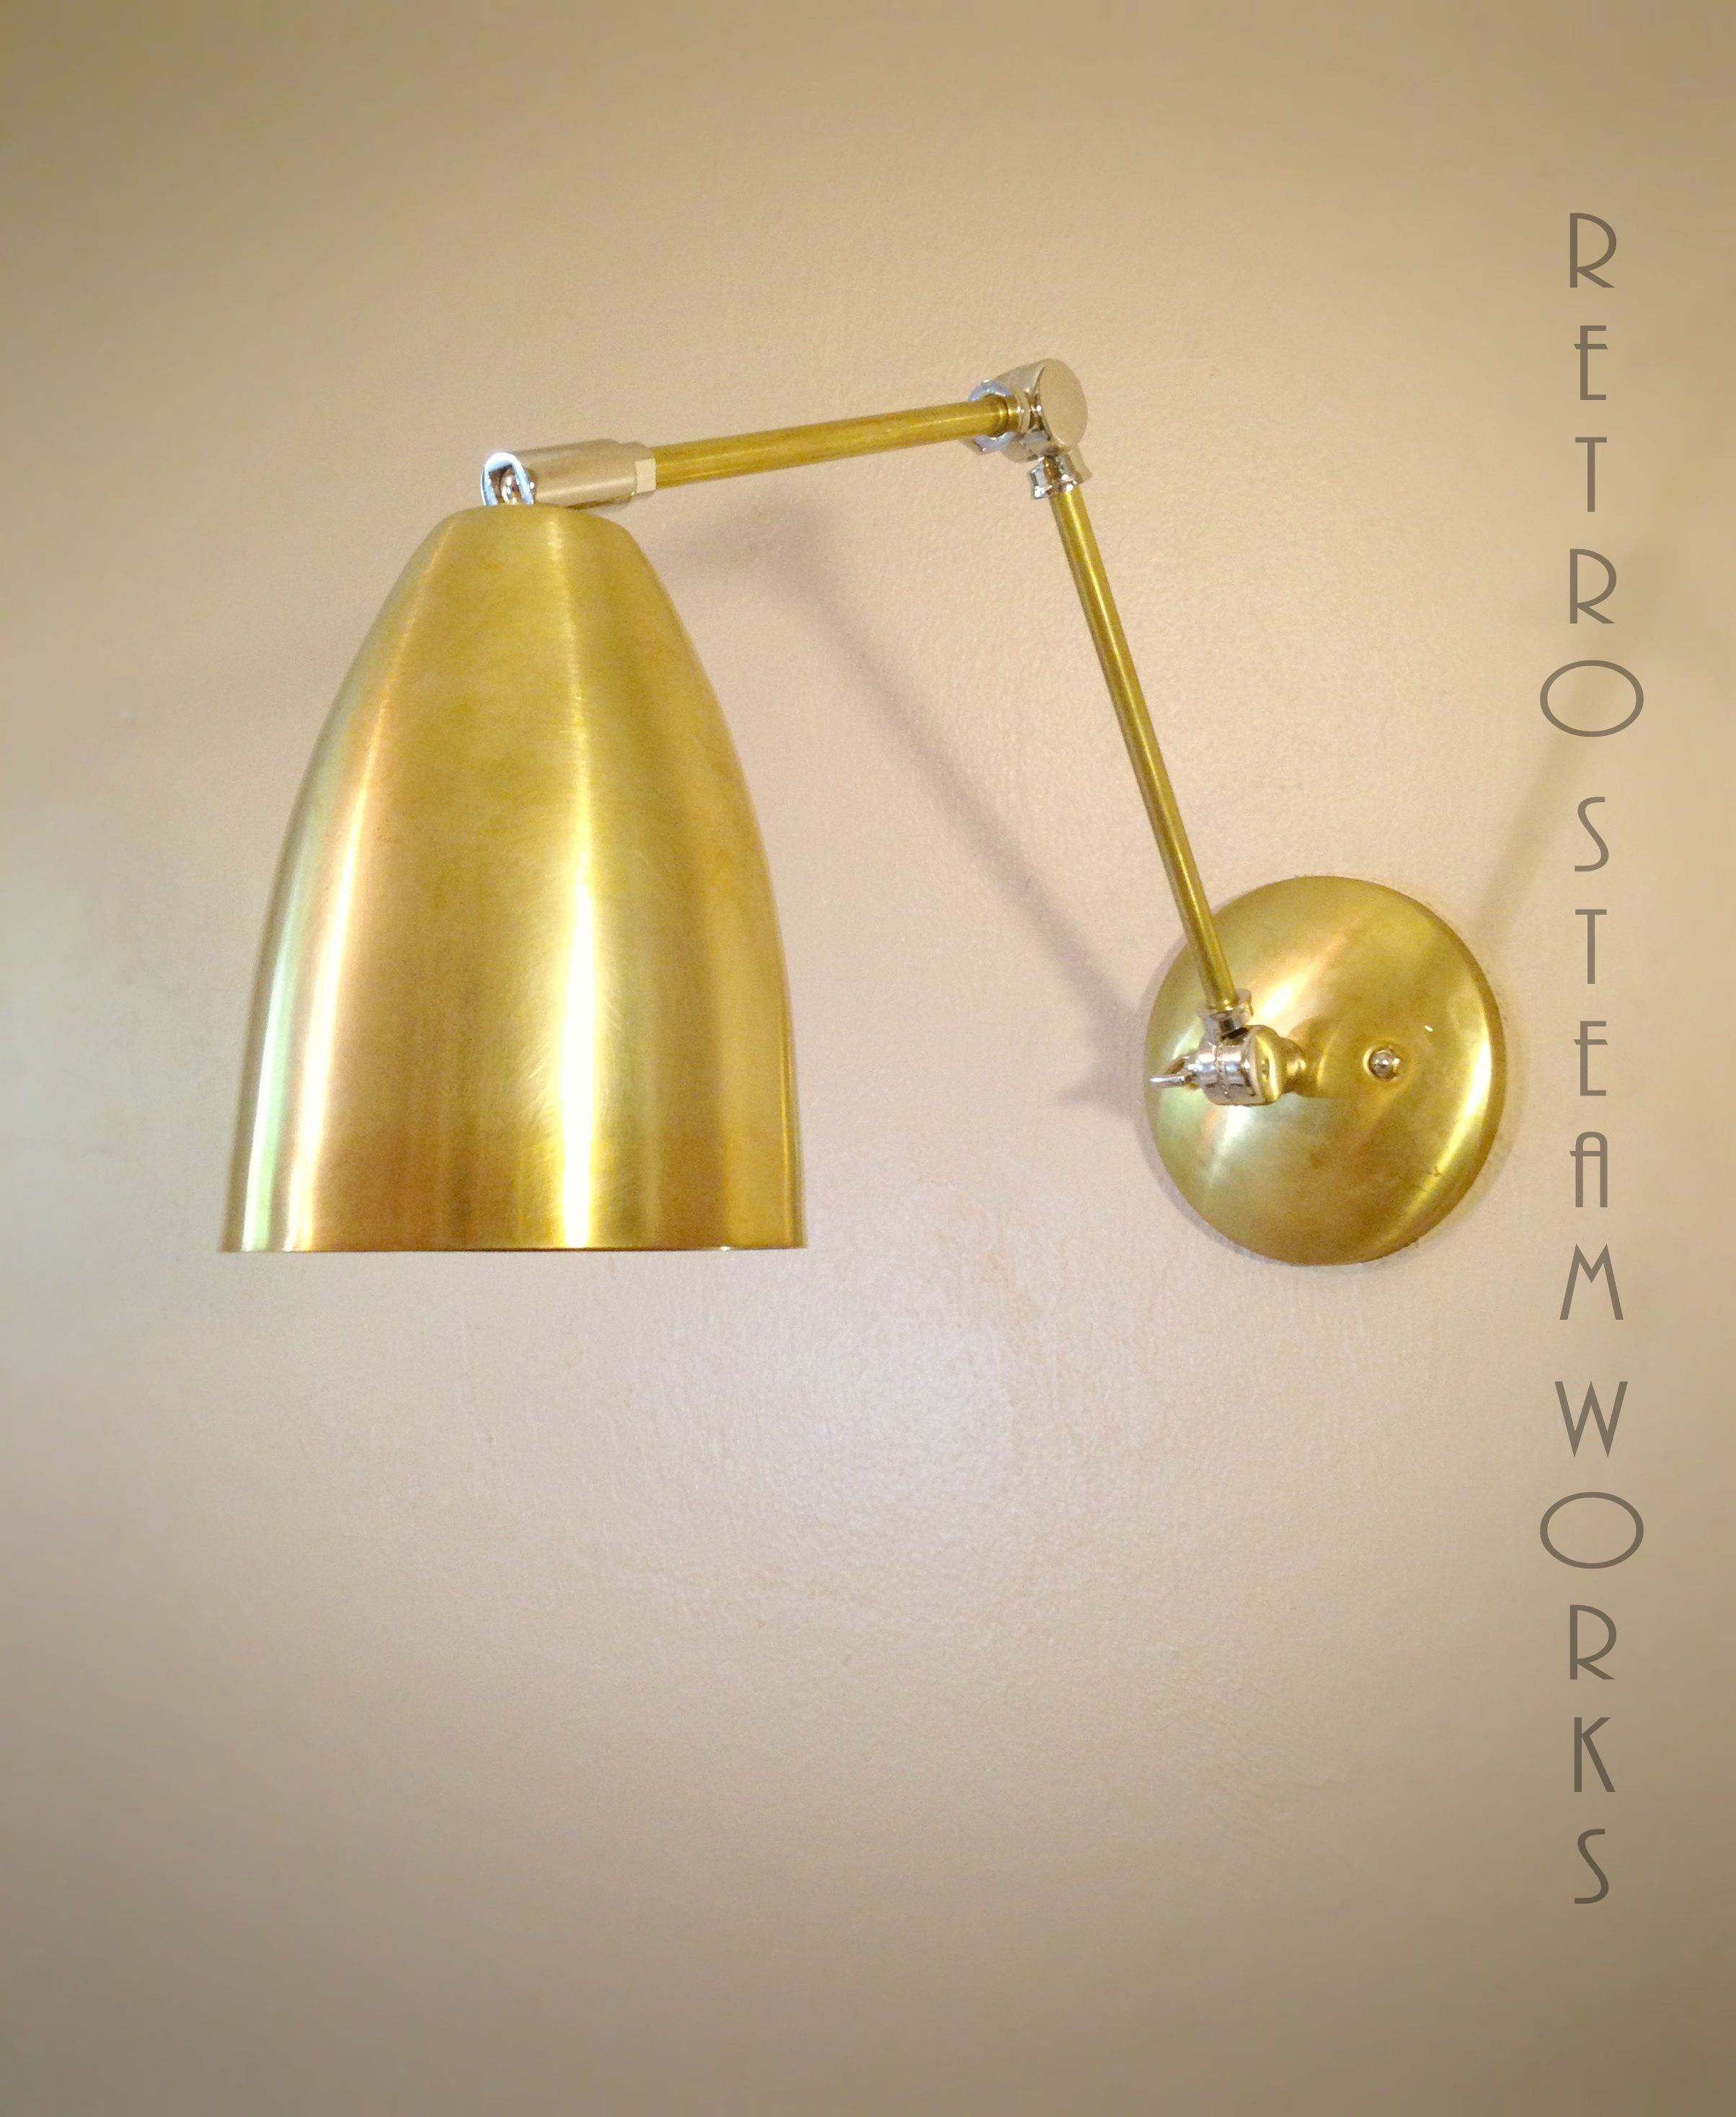 Hand made adjustable articulating wall mount art light brass and custom made adjustable articulating wall mount art light brass and nickel loft gallery sconce arubaitofo Choice Image